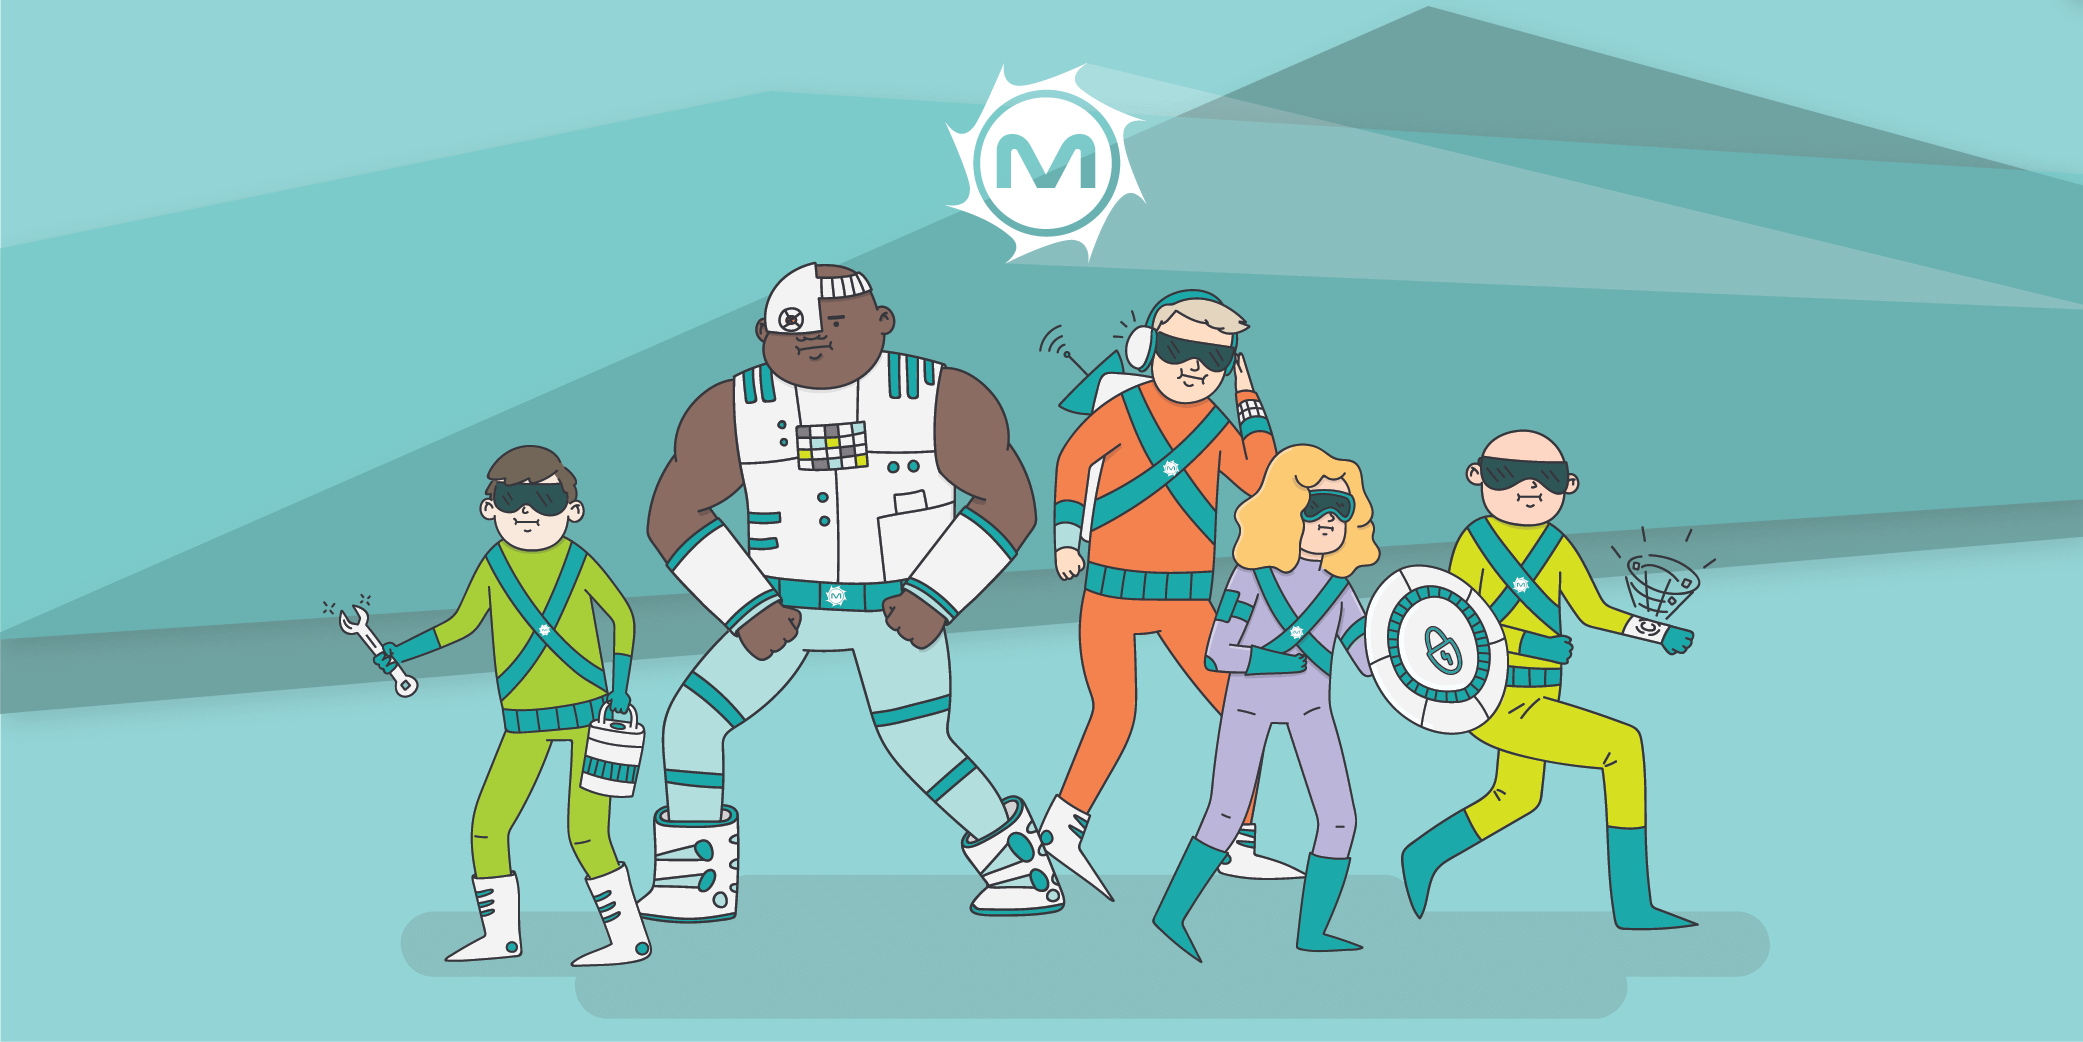 CyberSquad, Assemble! 5 Key Roles In Your Cybersecurity Team